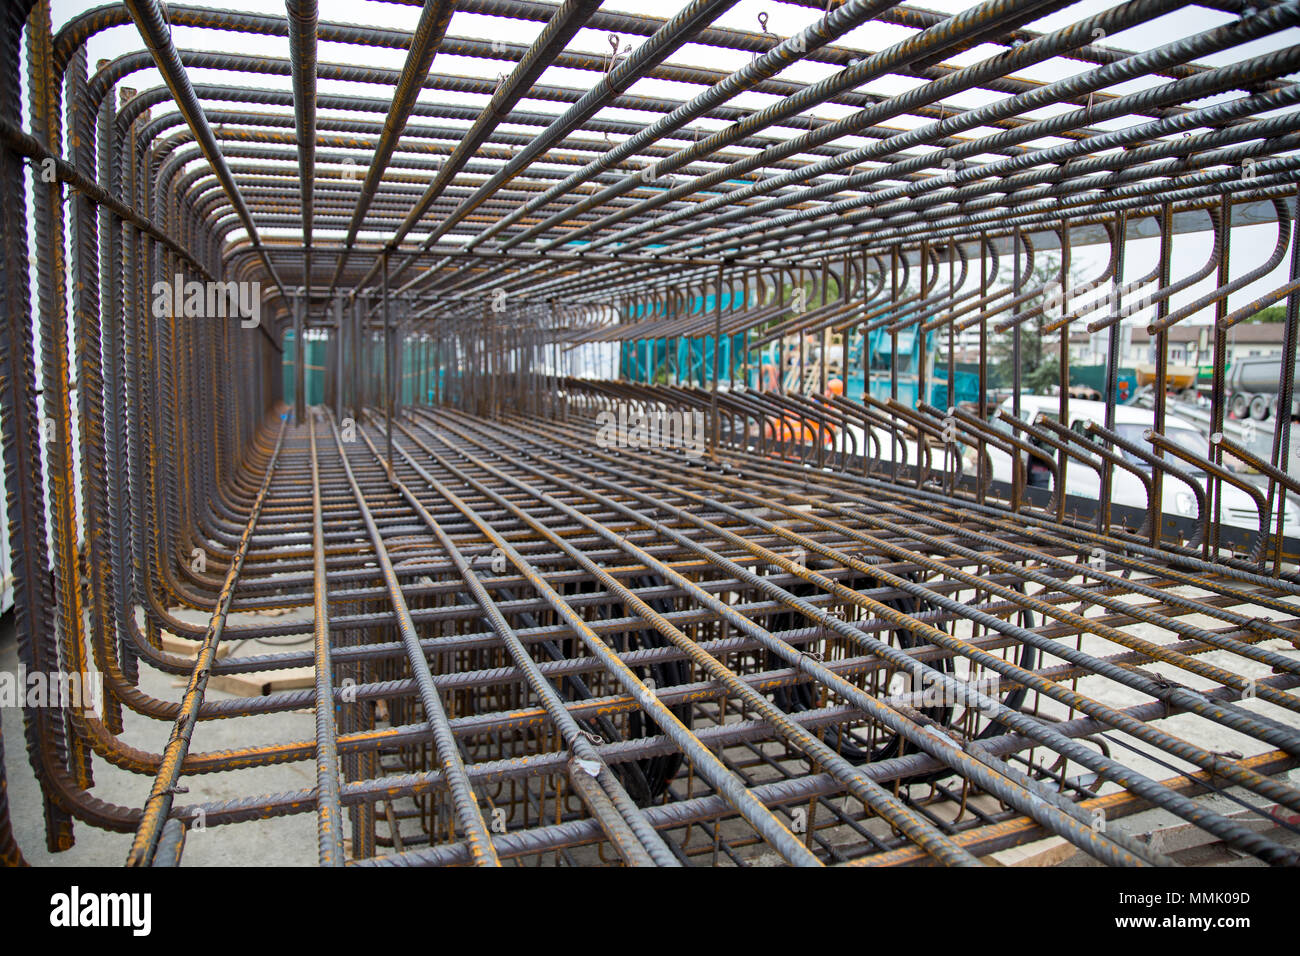 Steel Reinforcement Cage - Stock Image